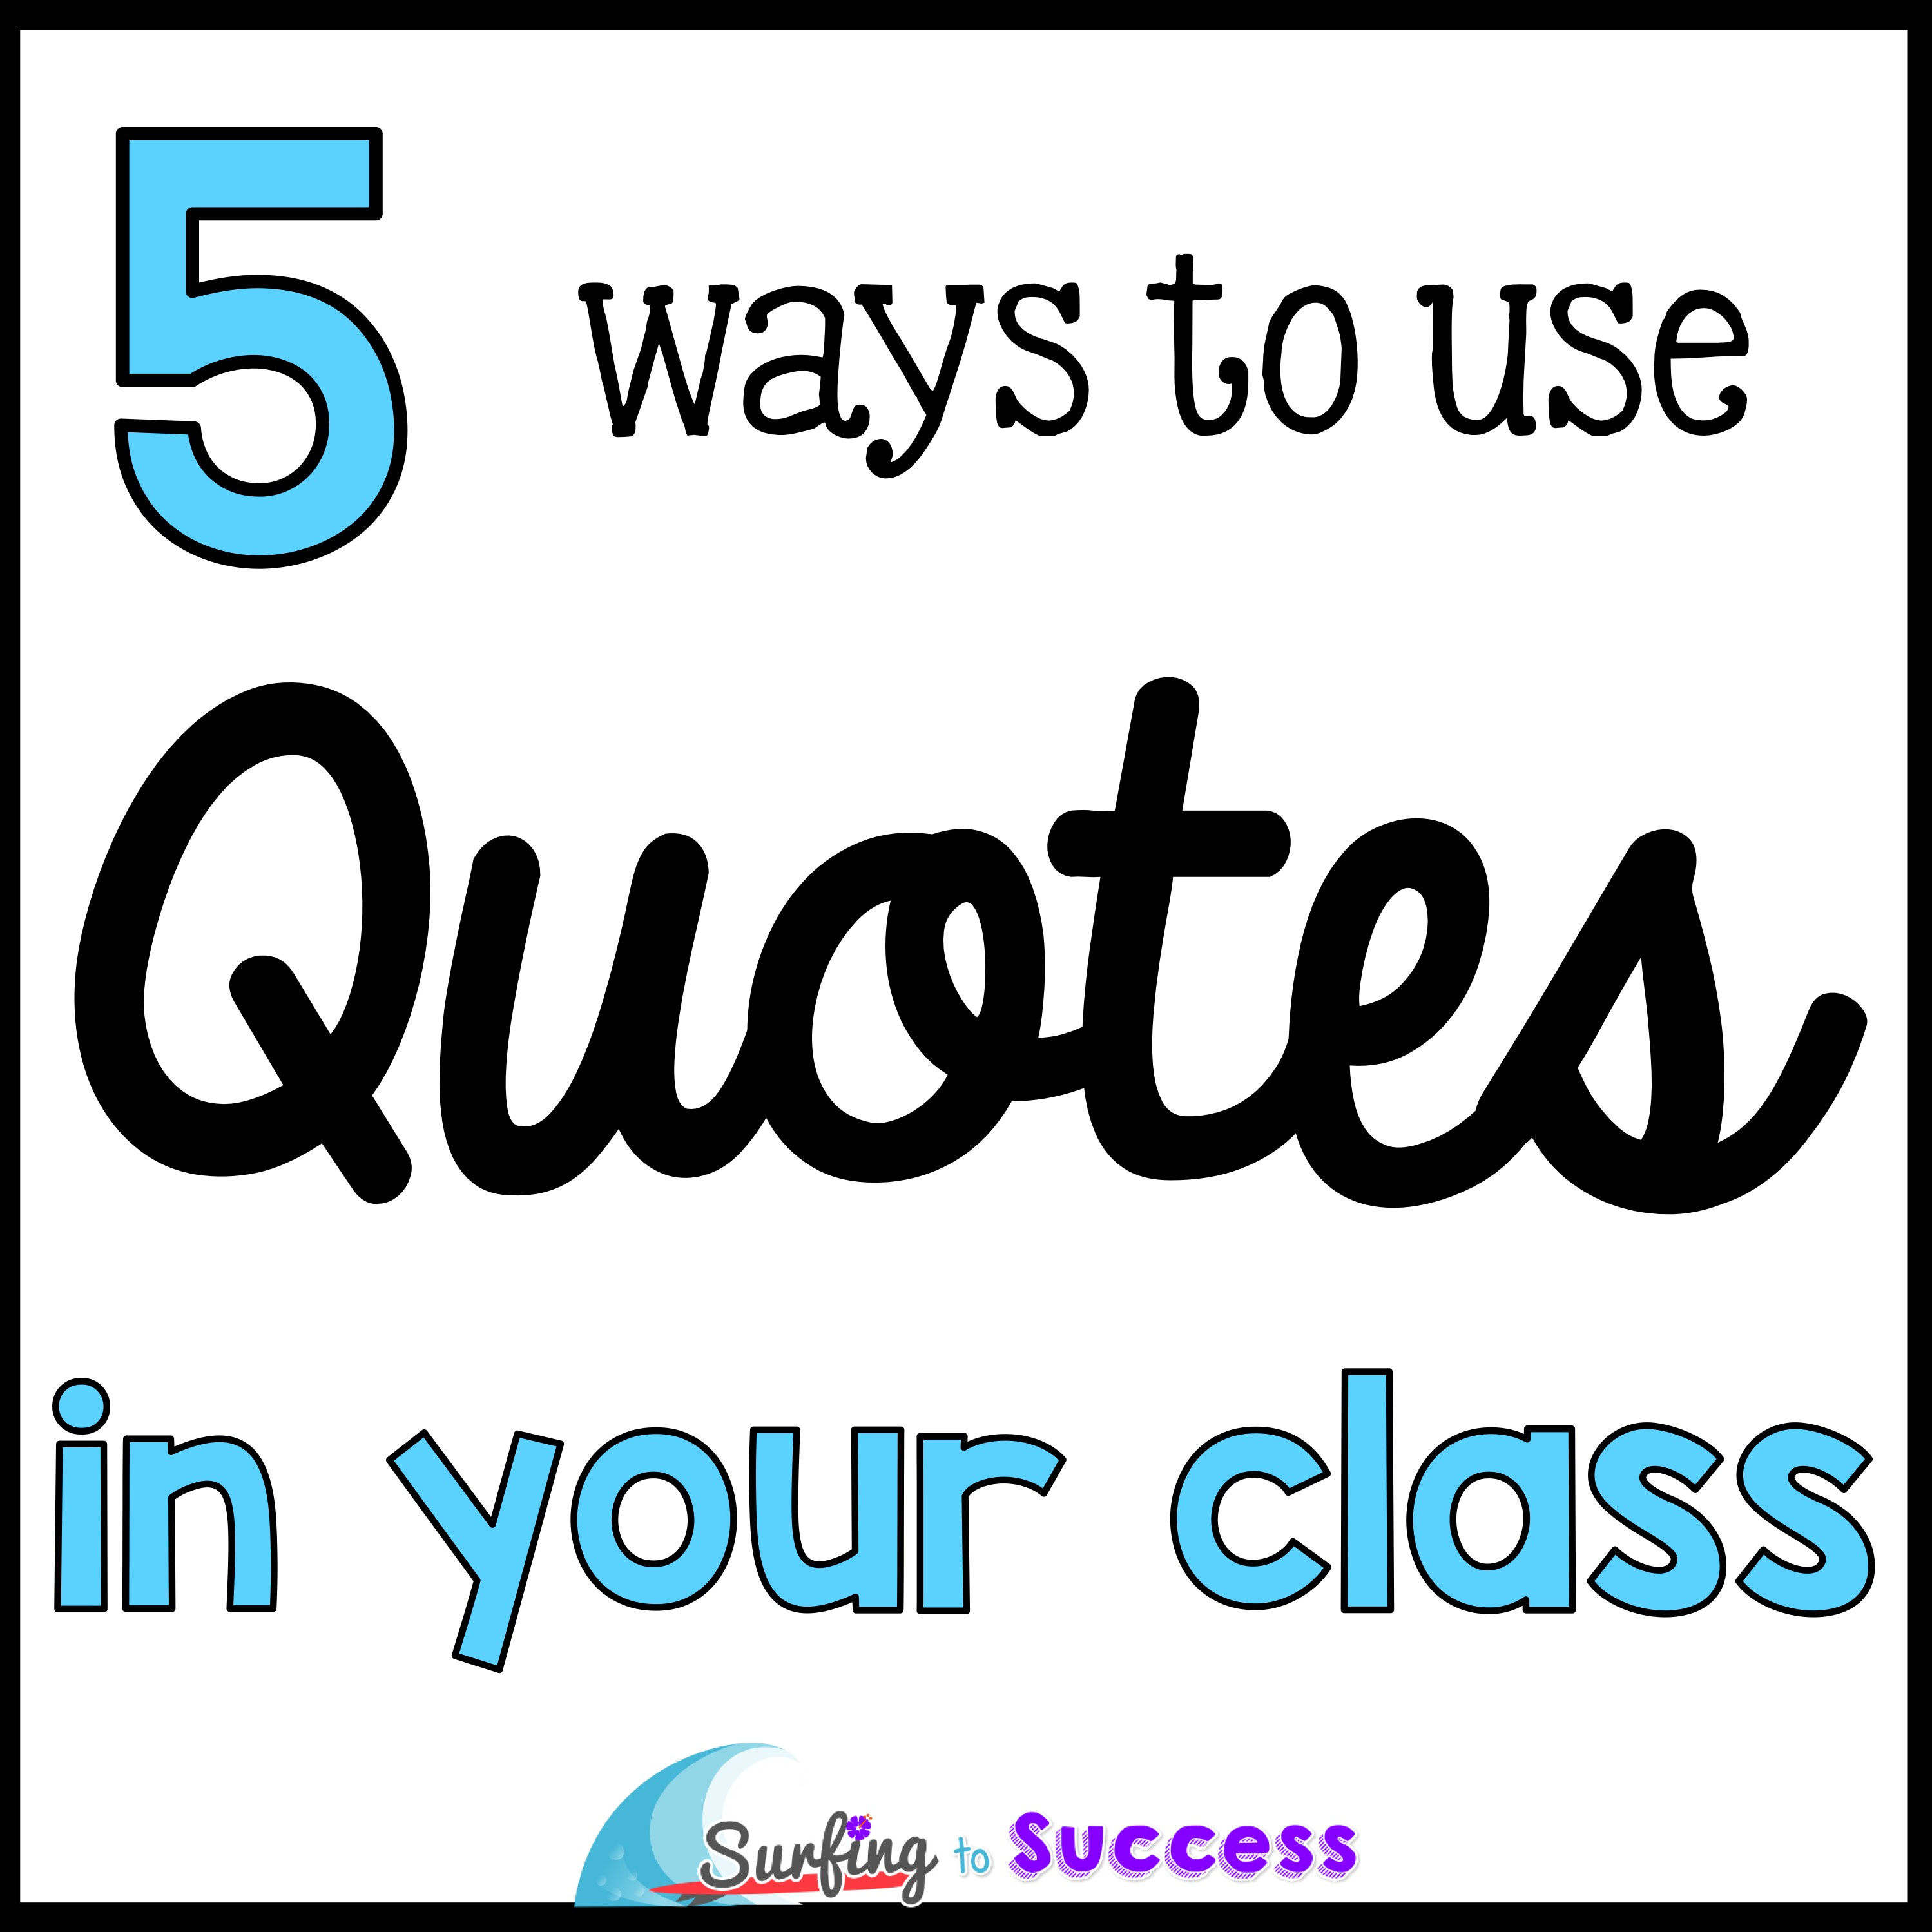 Classroom Quotes Using Quotes in the Classroom   Surfing to Success Classroom Quotes